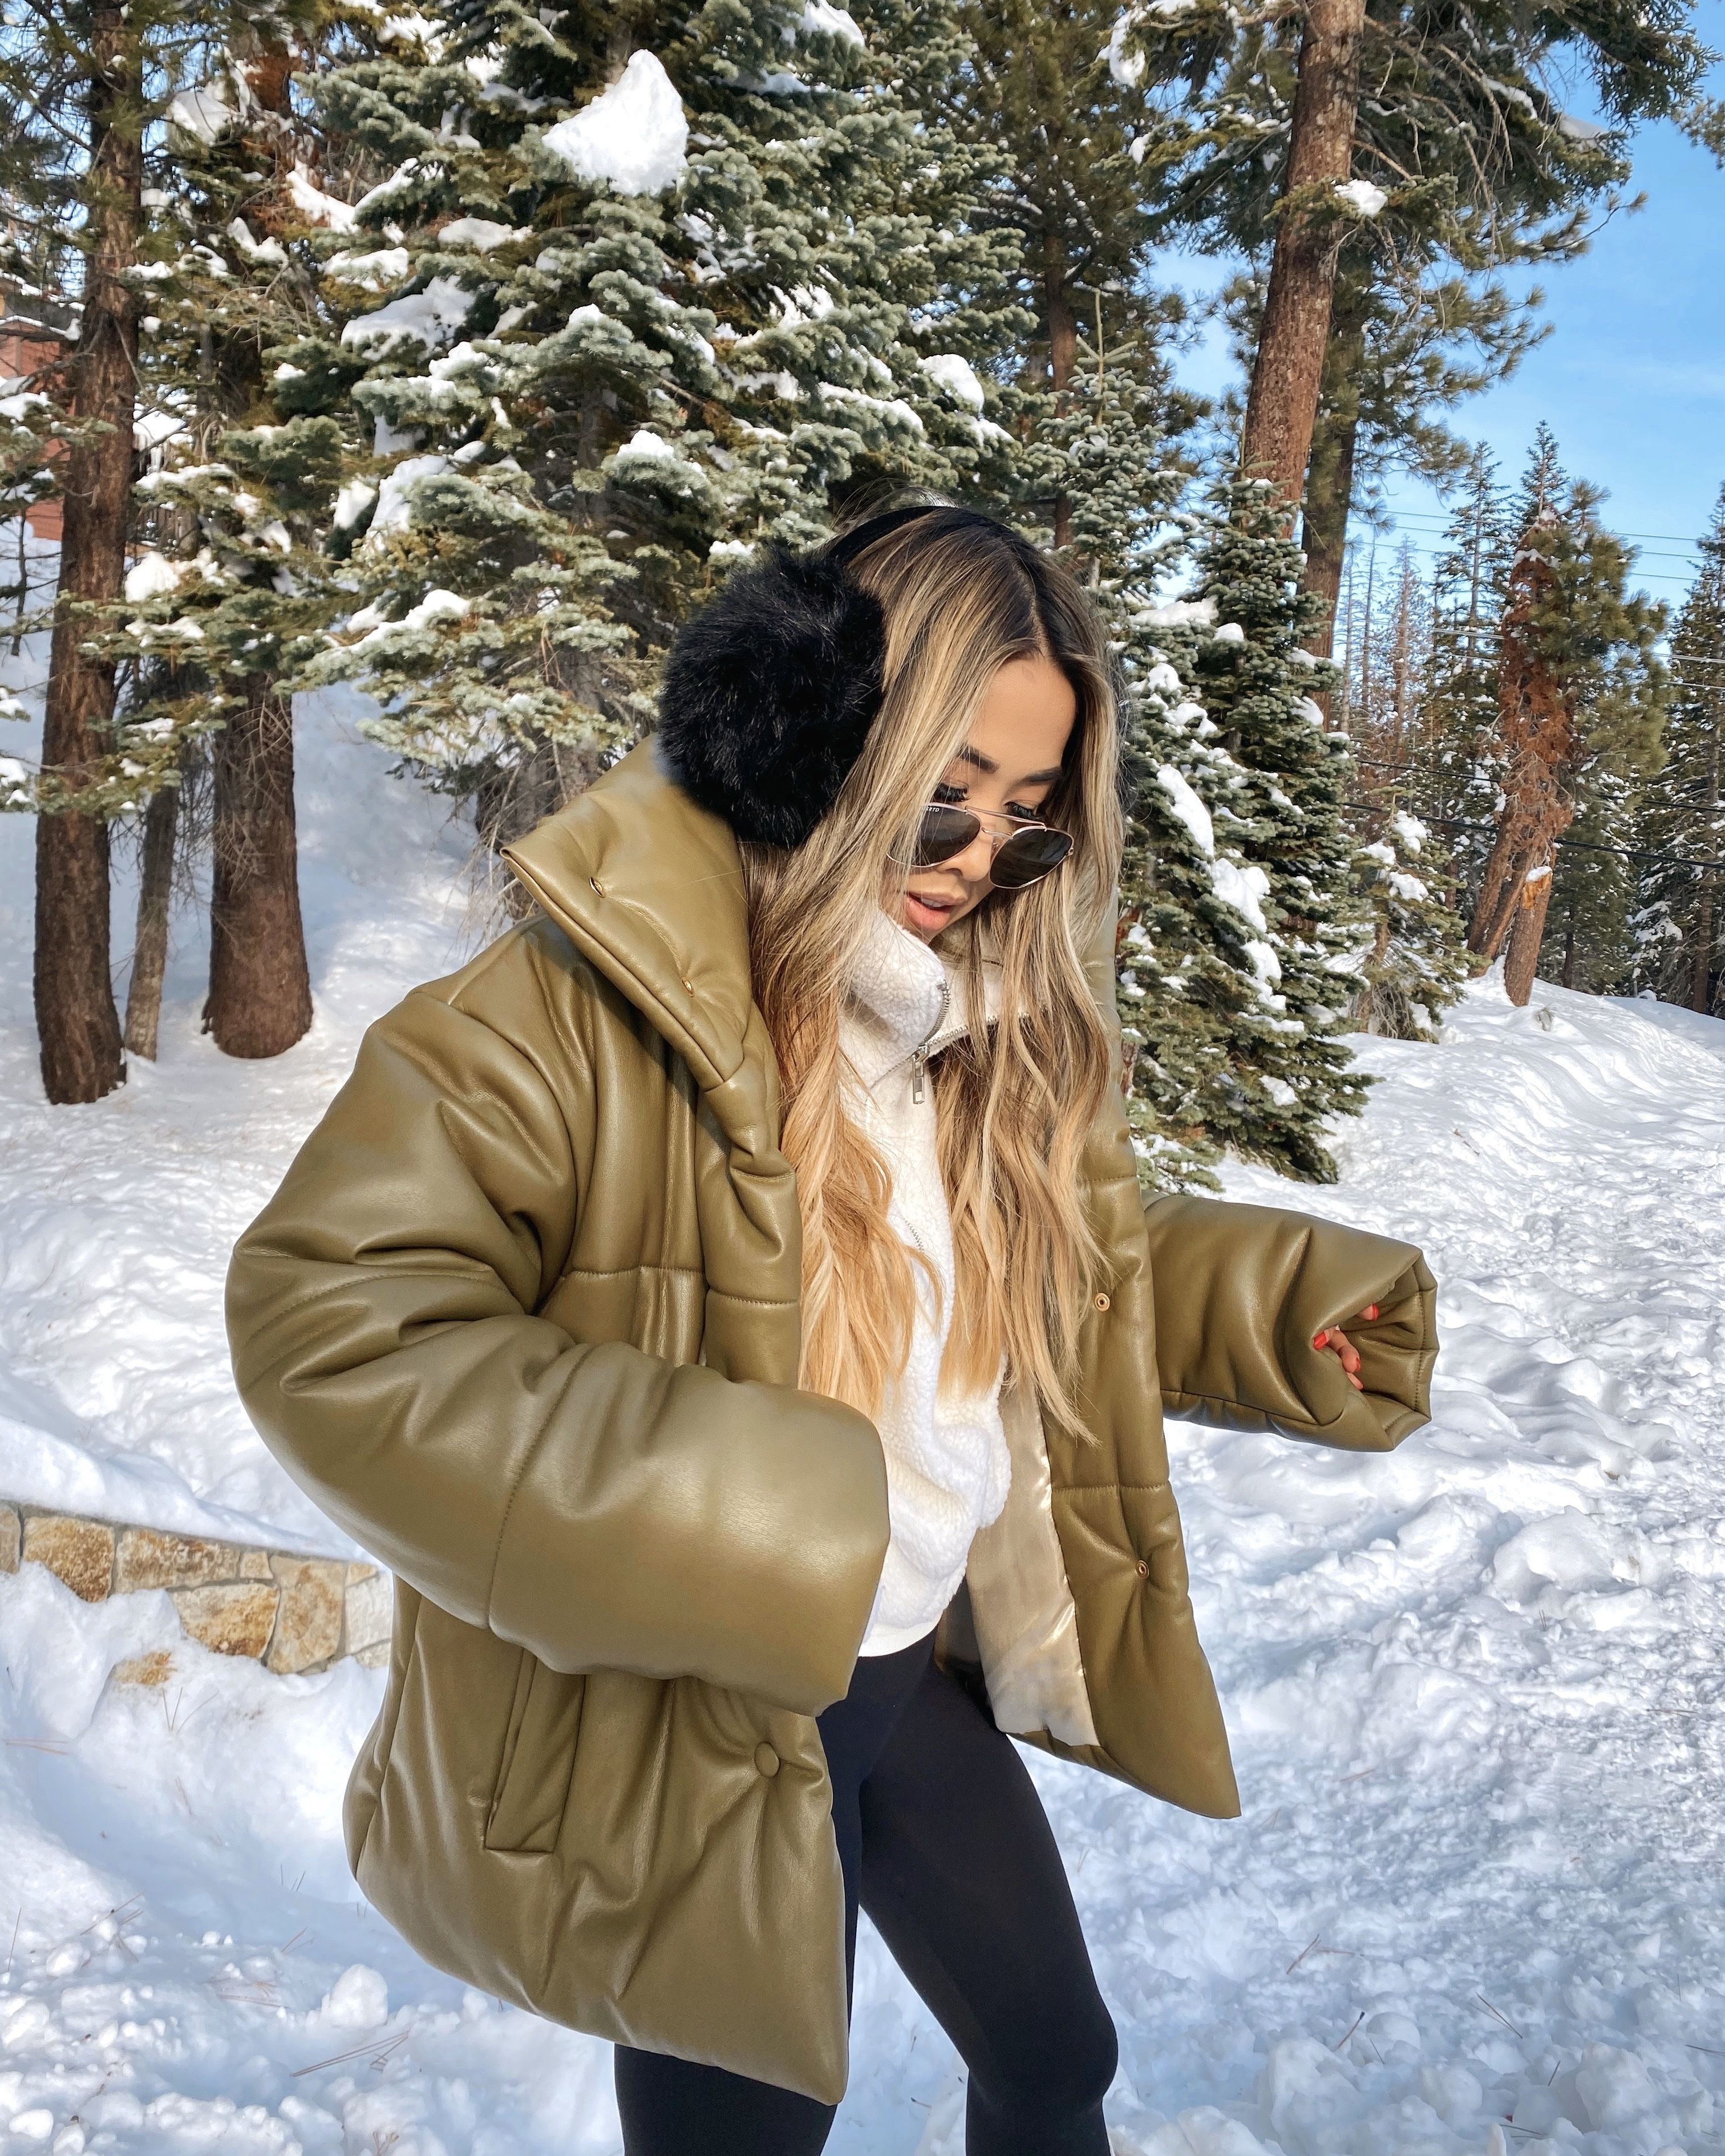 Cold weather snow fashion outfit | Snow fashion, Winter